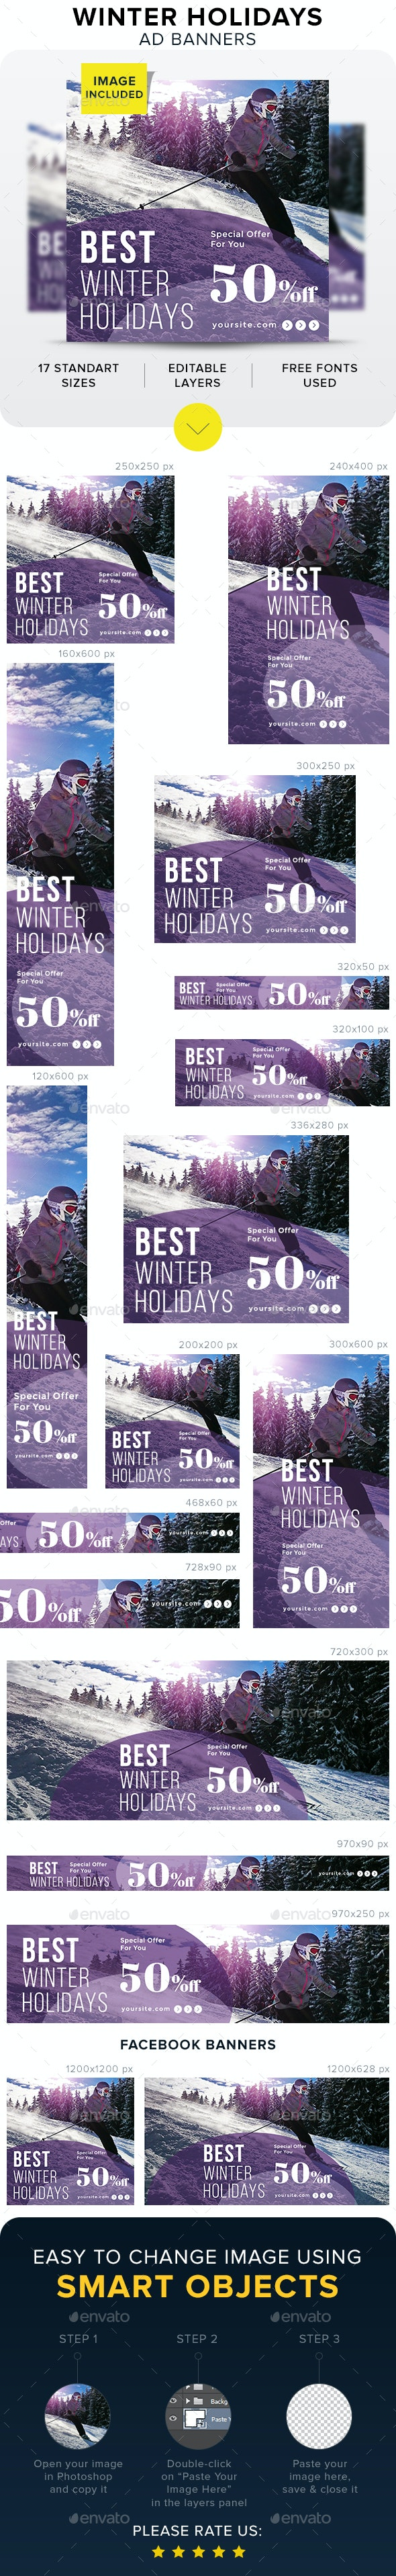 Winter Holidays Banners - Banners & Ads Web Elements